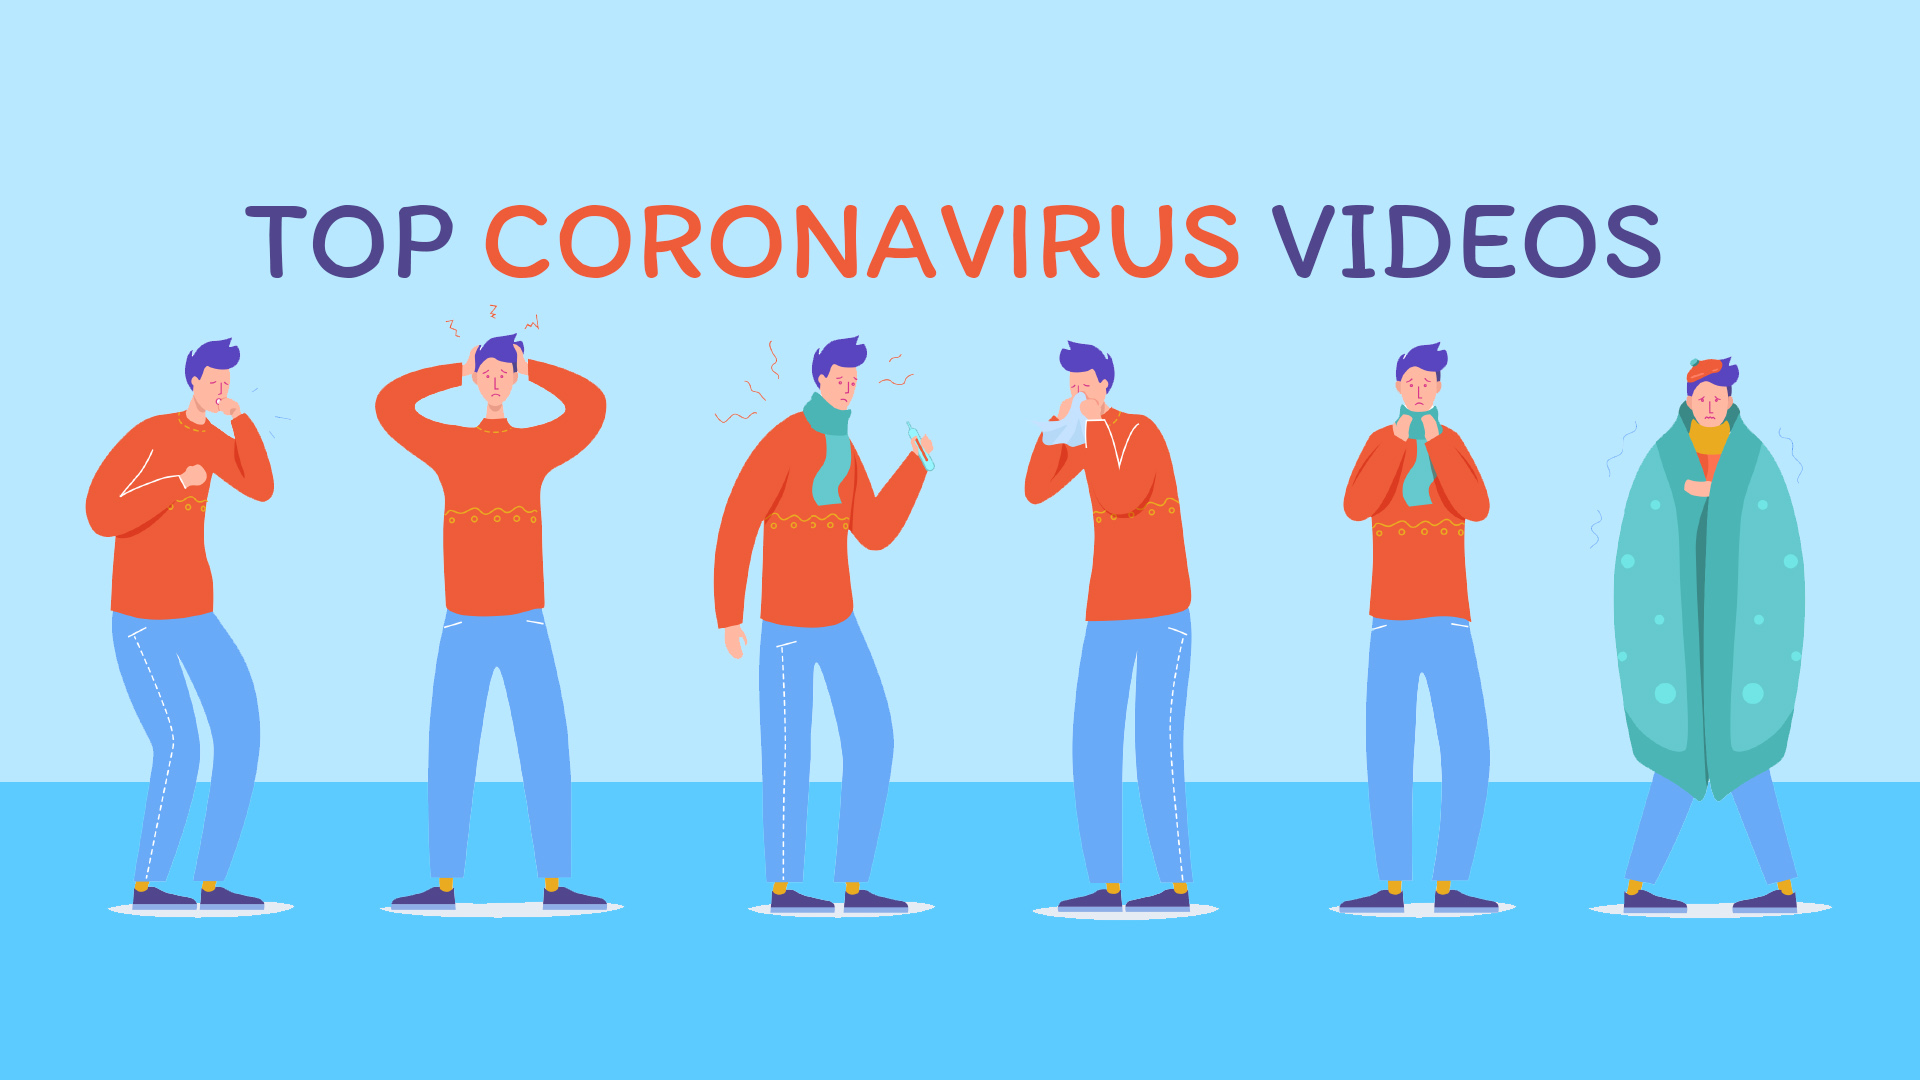 Coronavirus Animated Video 2020